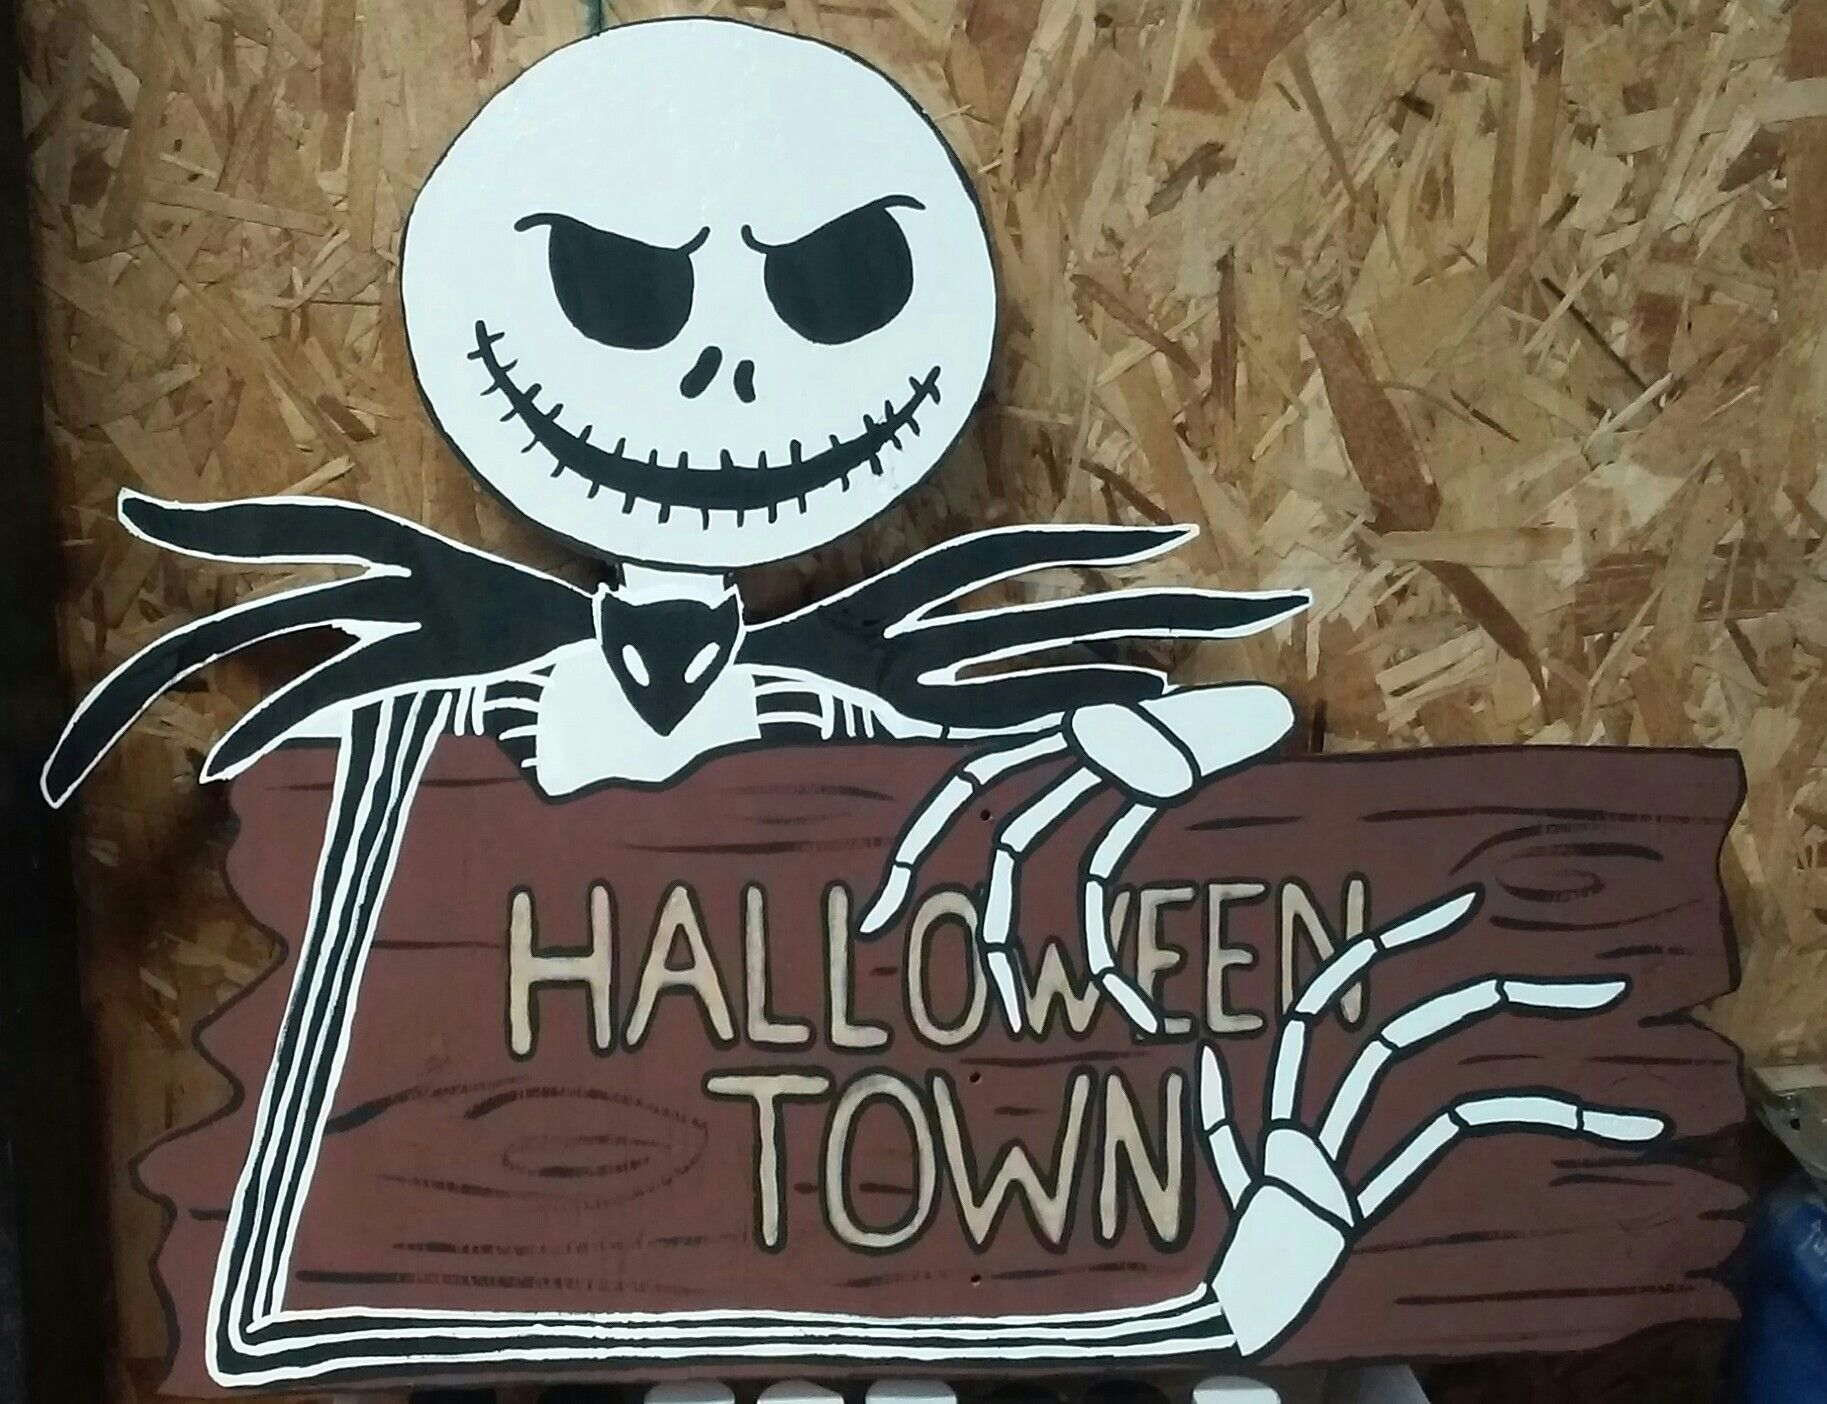 jack skellington from the nightmare before christmas halloween town sign